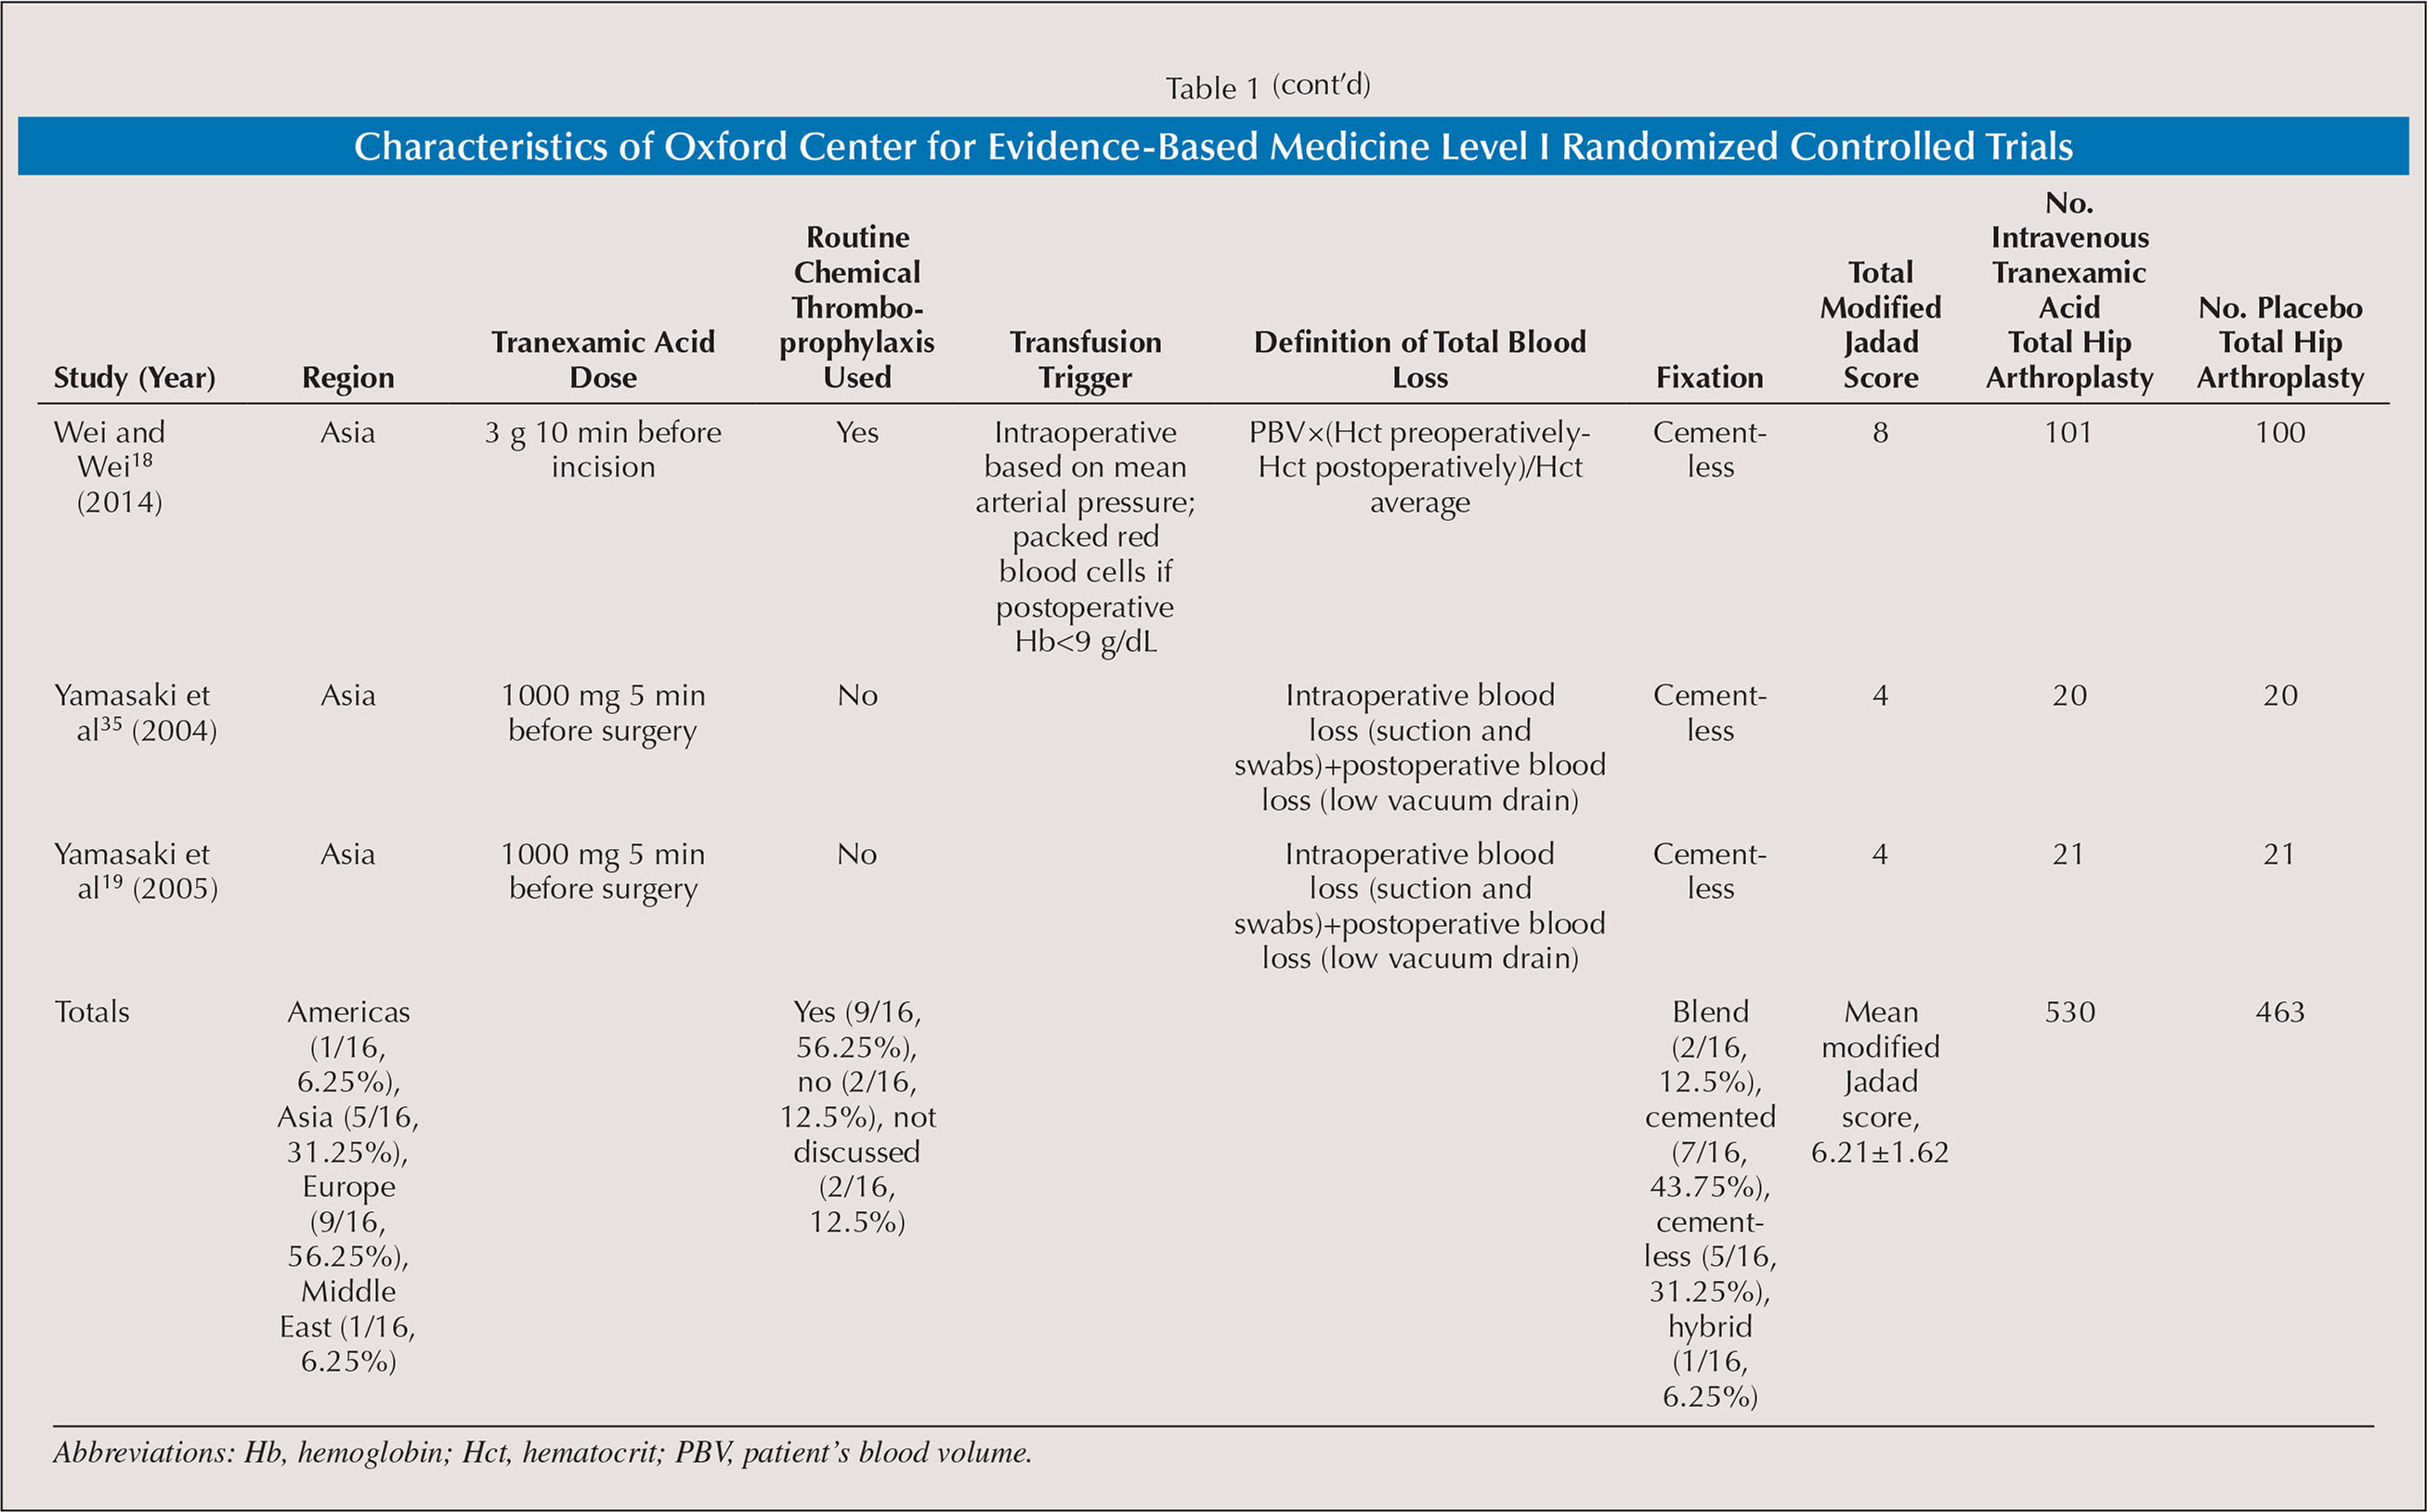 Characteristics of Oxford Center for Evidence-Based Medicine Level I Randomized Controlled Trials